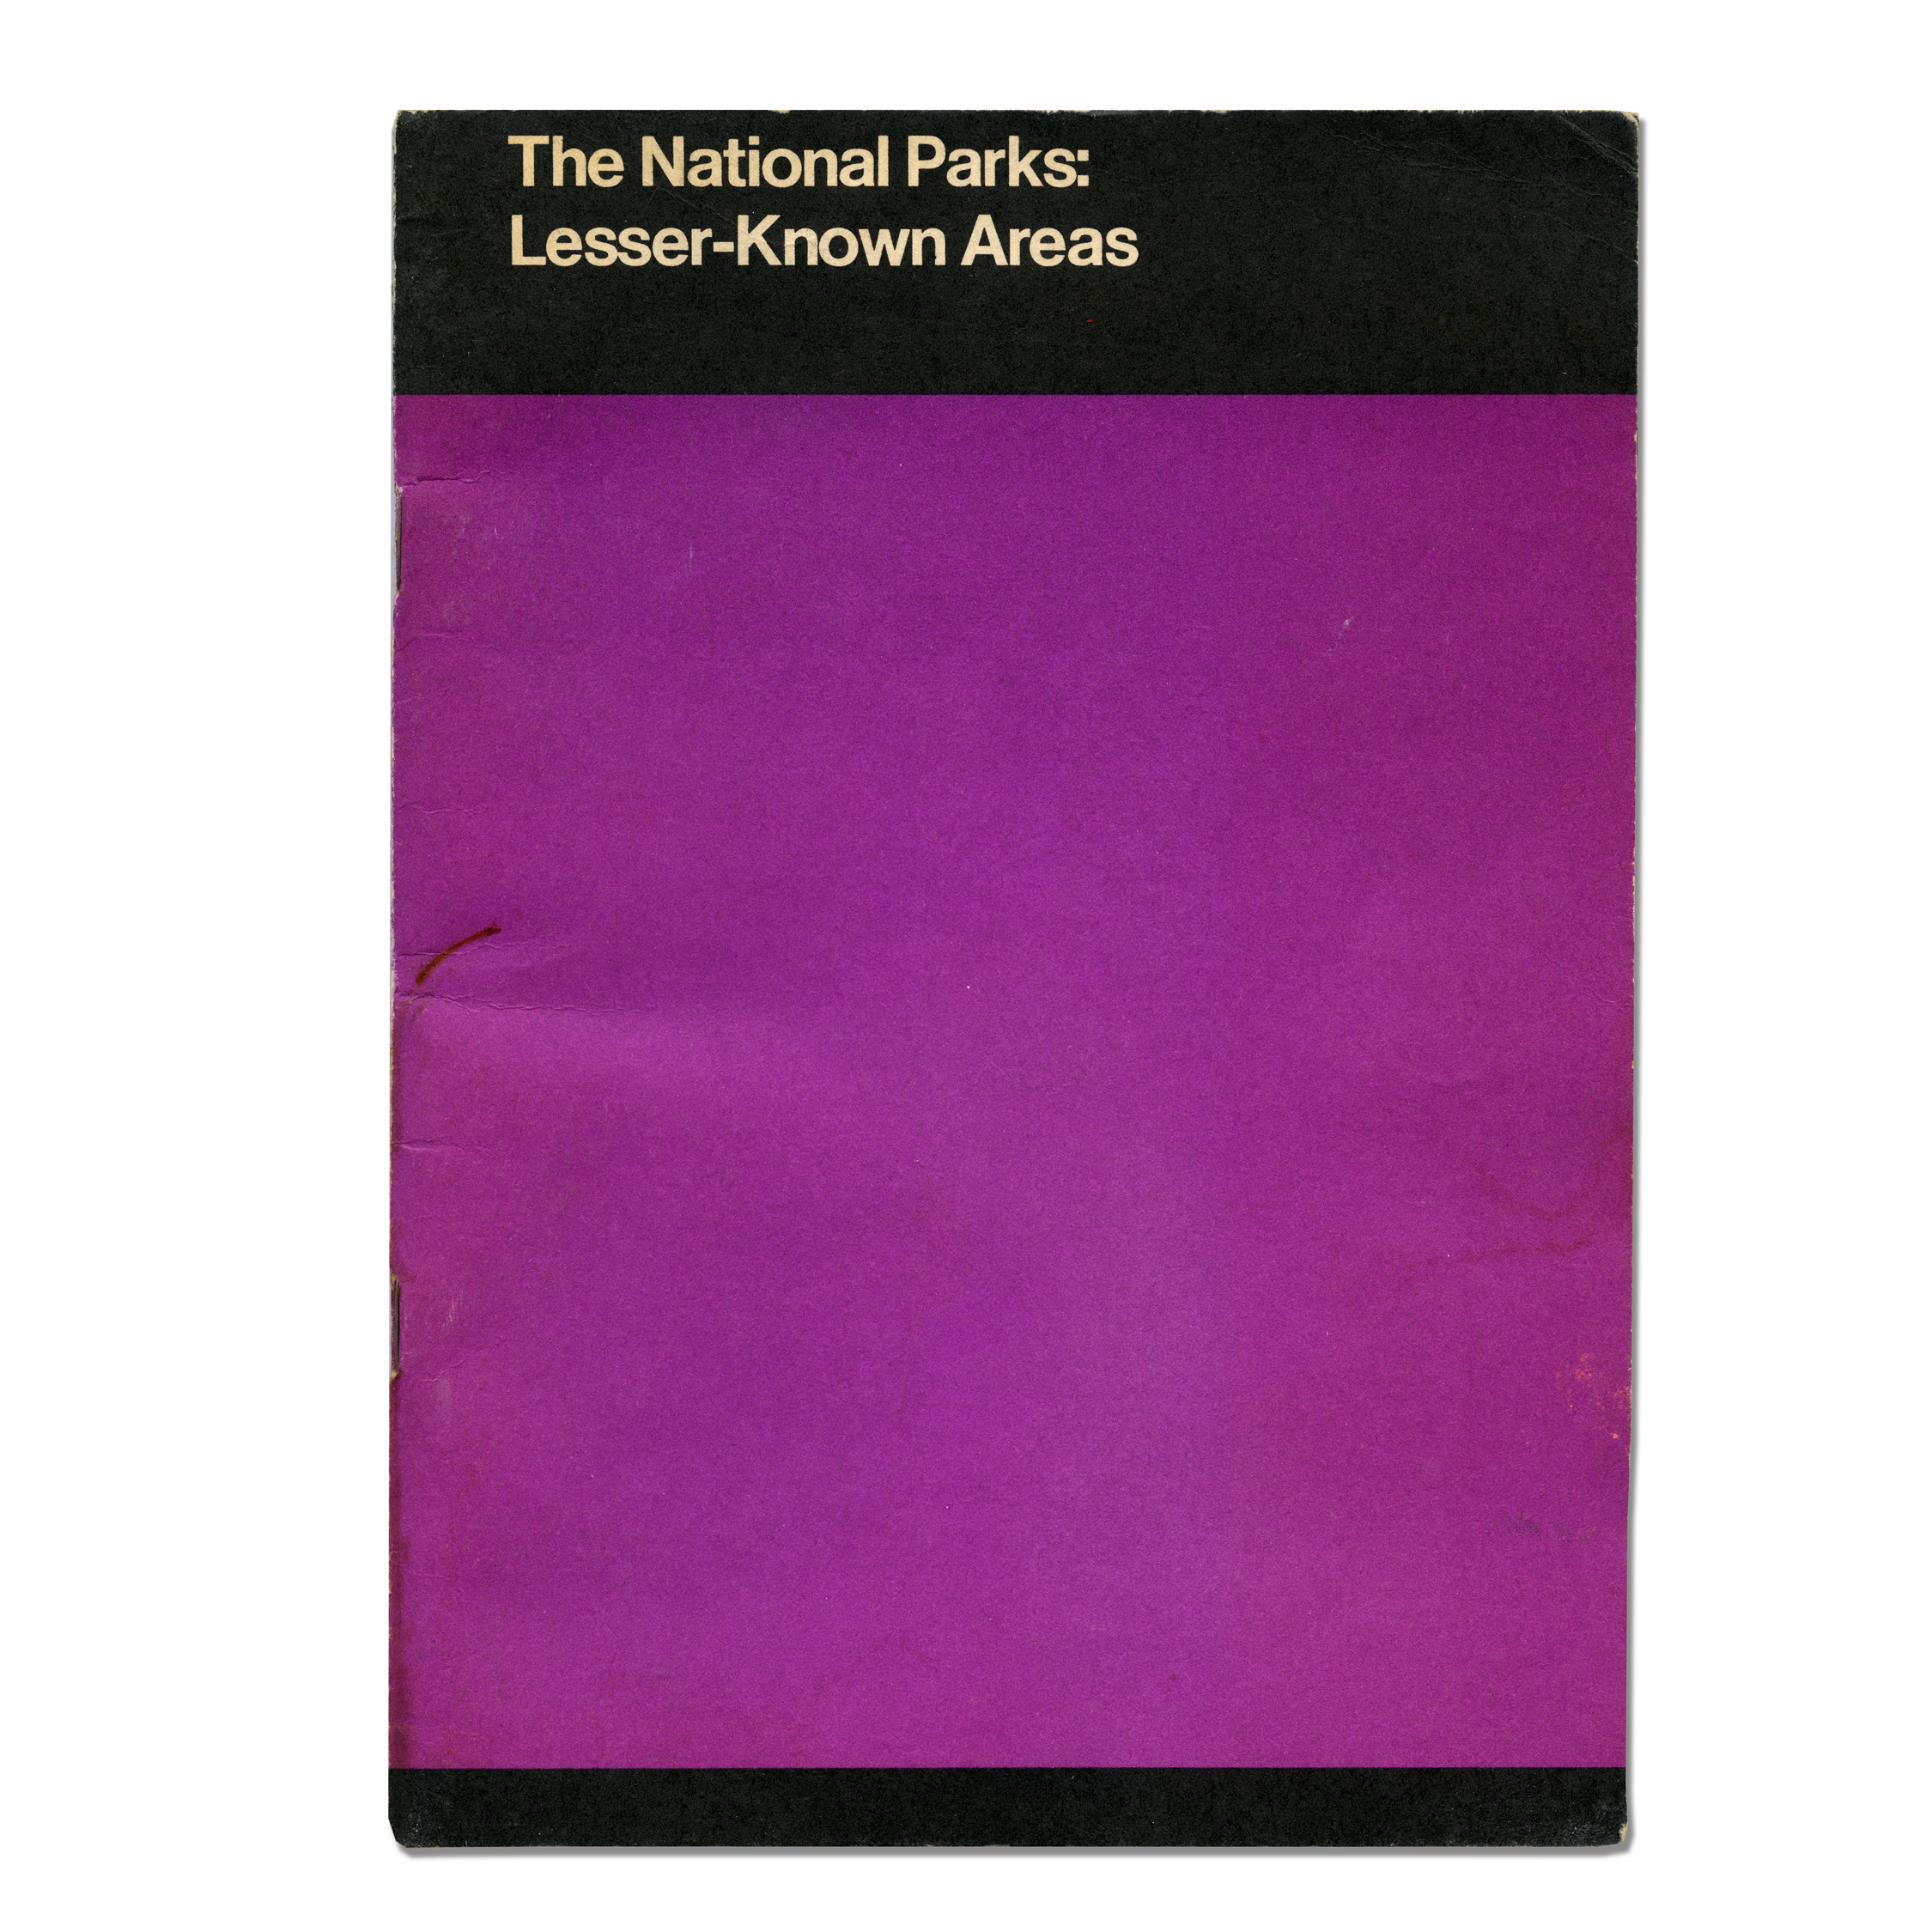 1985_national_parks_lesser_known_areas_brochure.jpg